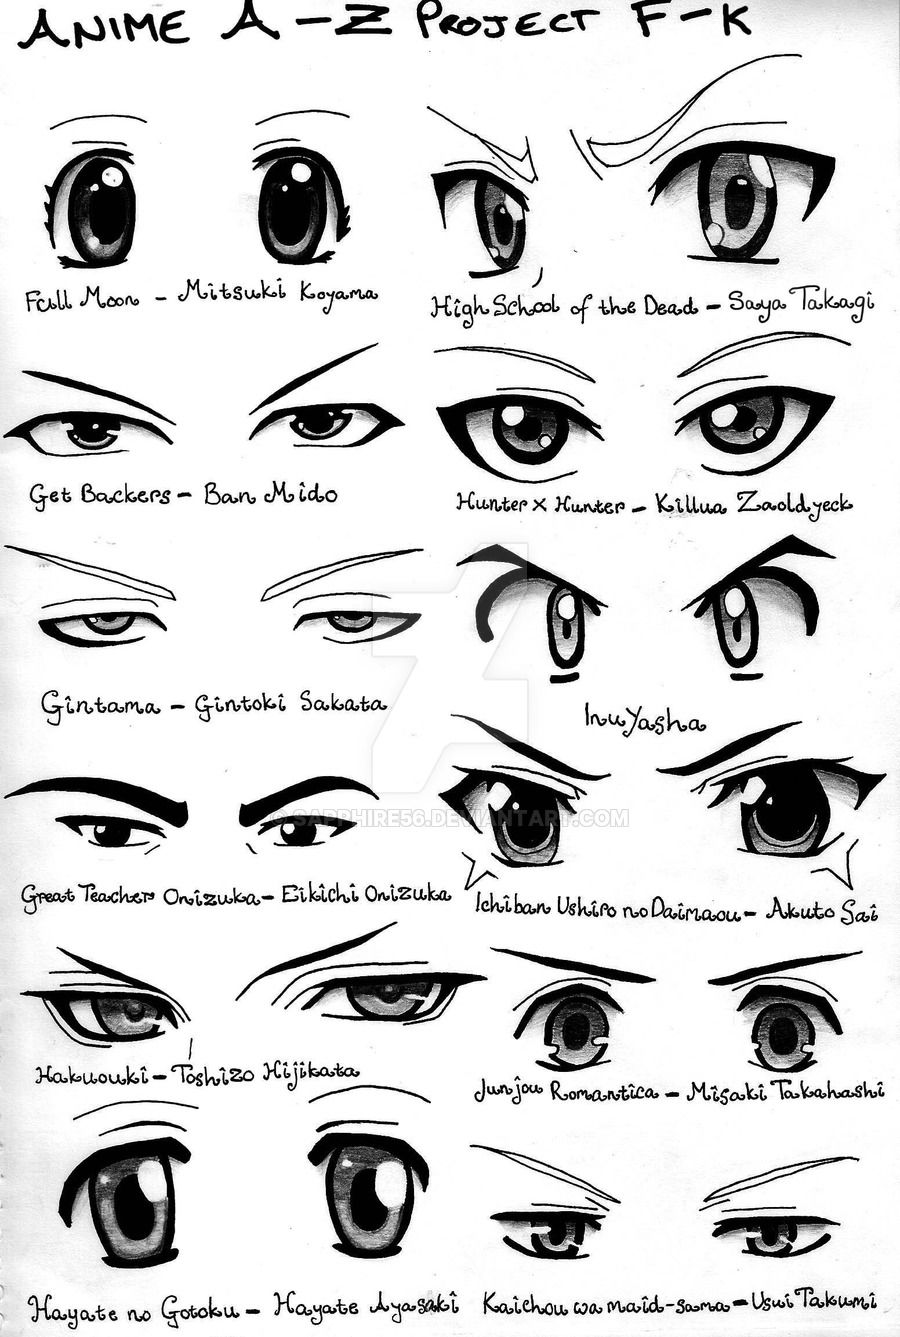 Anime A Z Project F K By Sapphire56 Anime Eye Drawing How To Draw Anime Eyes Manga Eyes